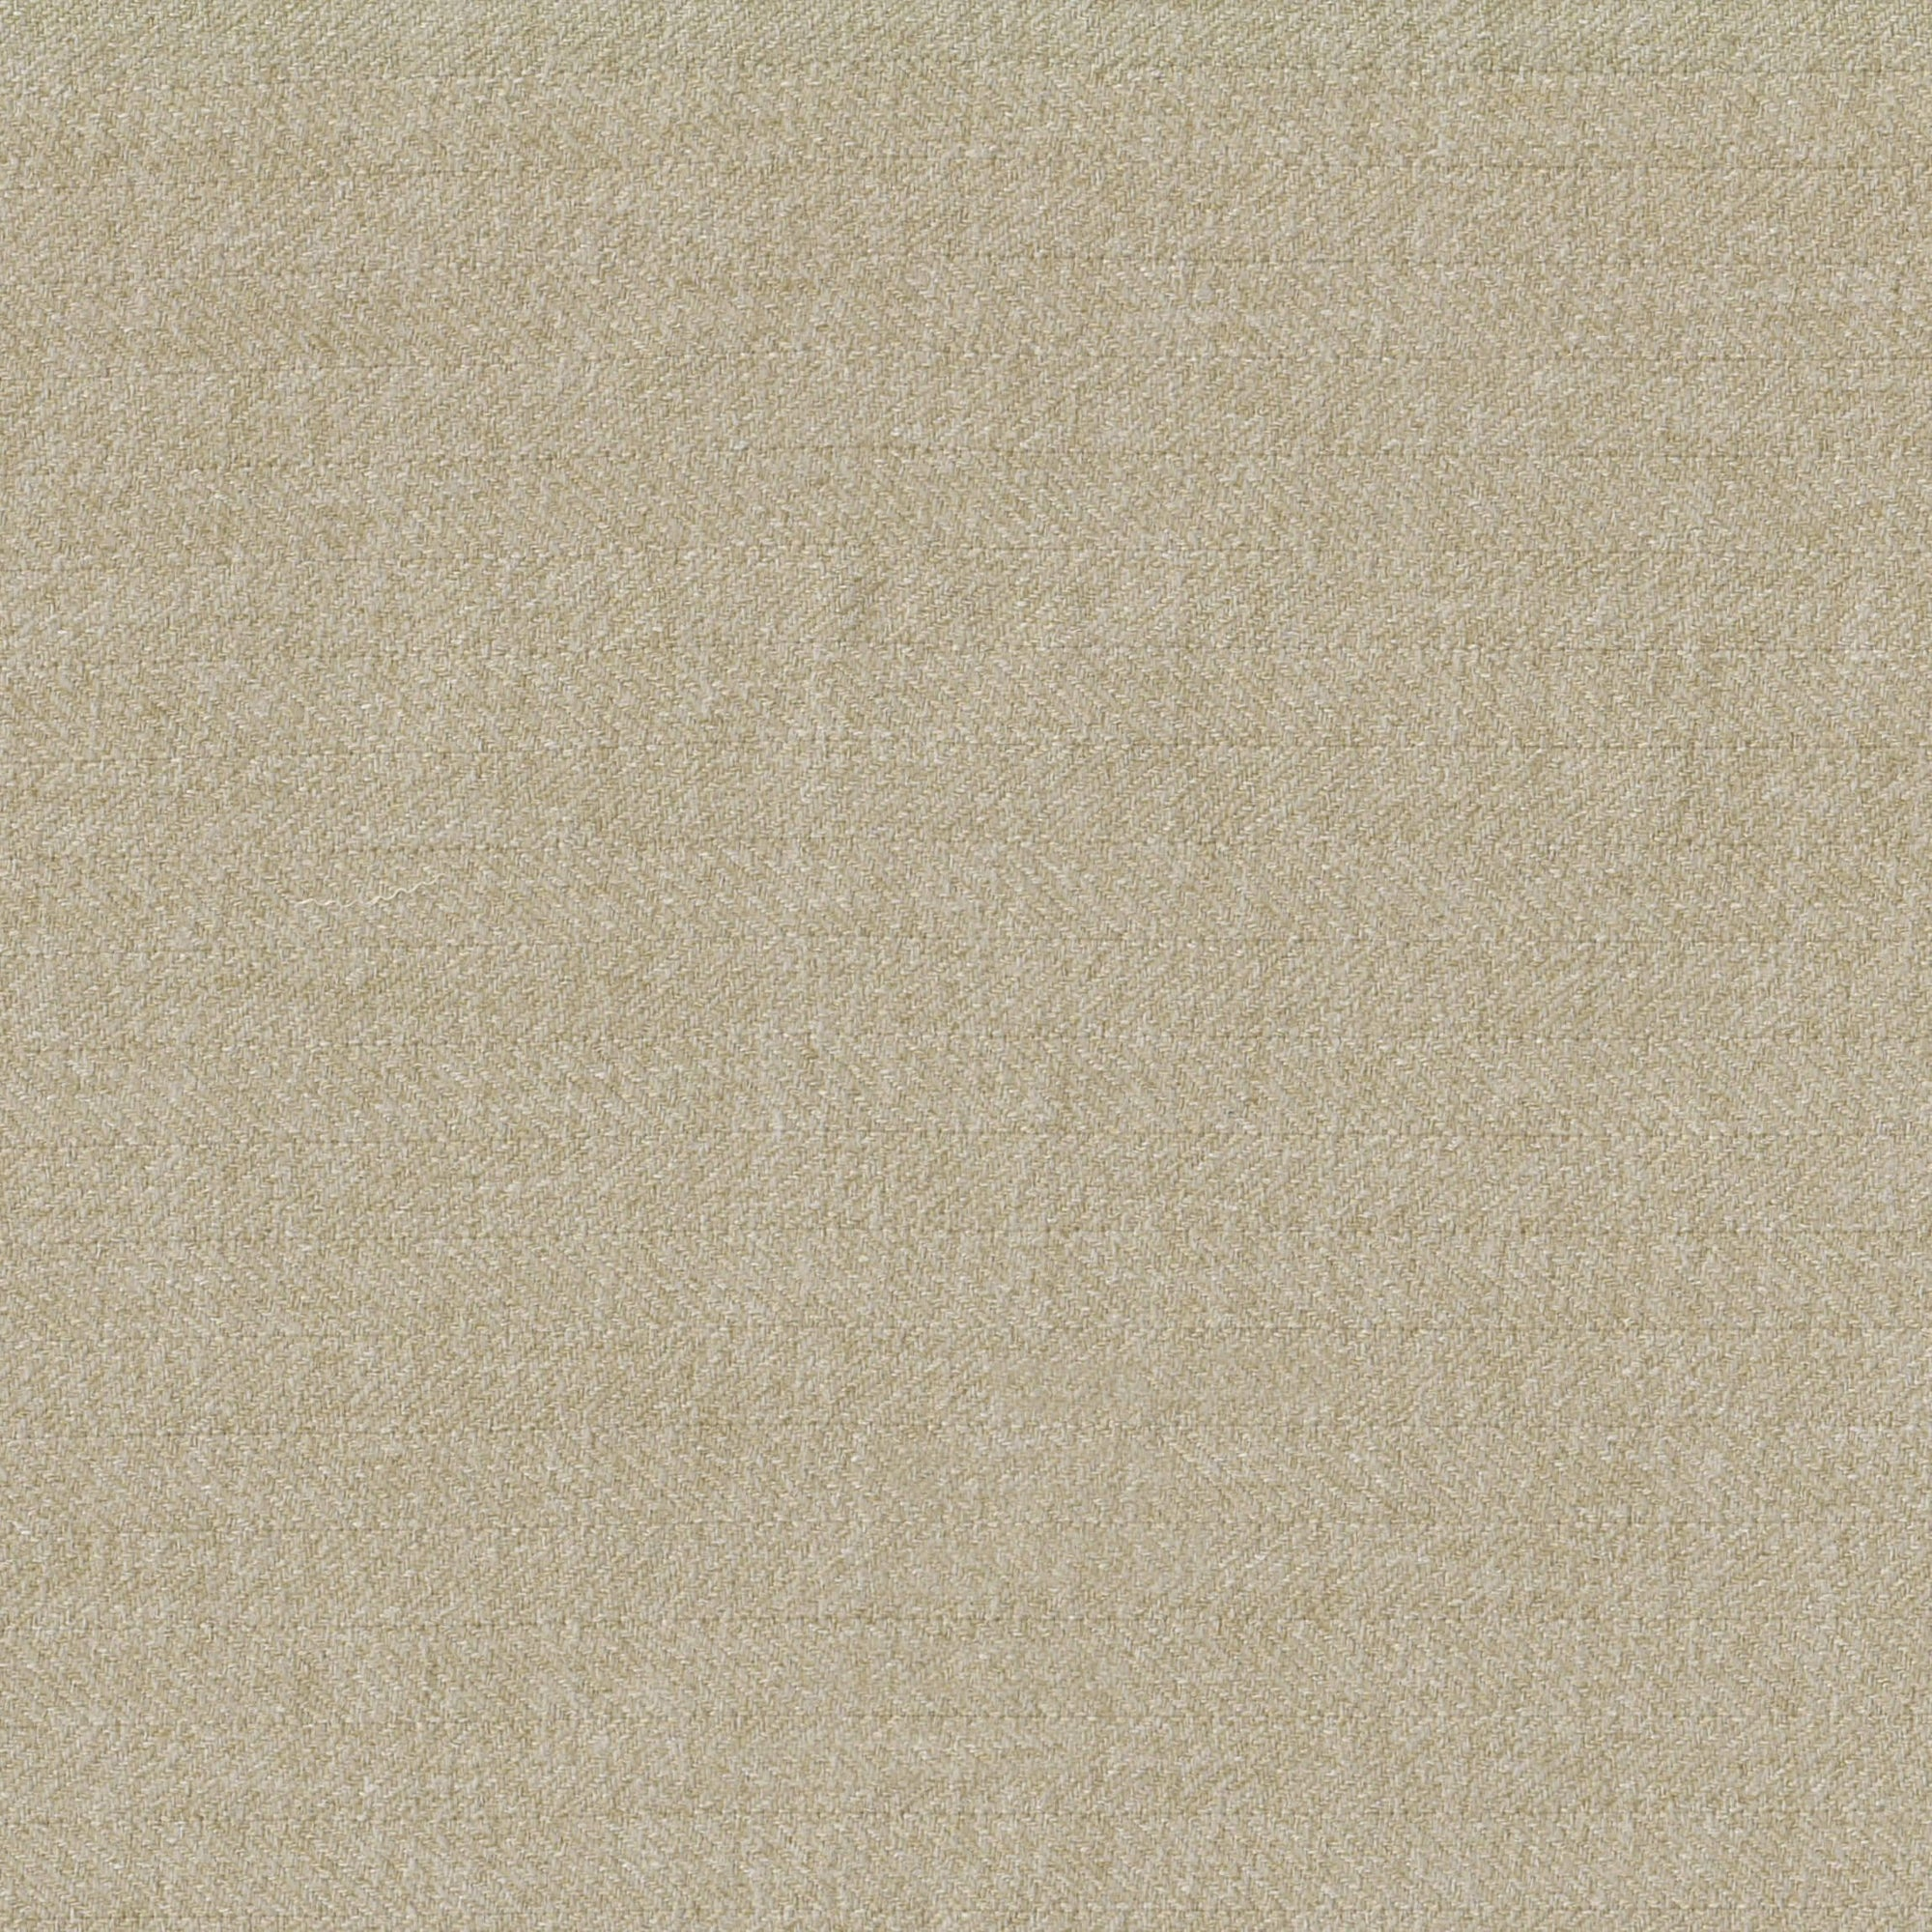 Heather Woven, Flax